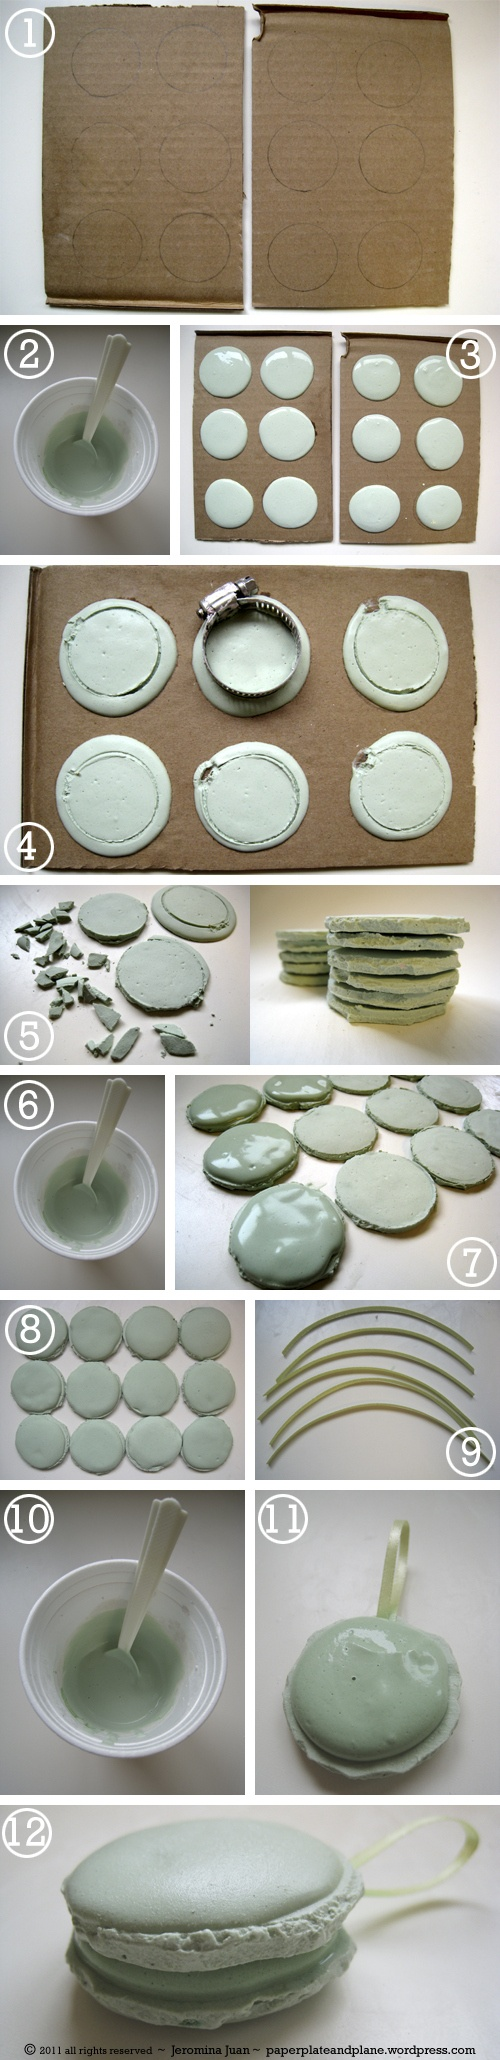 Diy Plaster French Macaron Ornaments  (you could also make these with corn starch or salt clay) - Tutorial